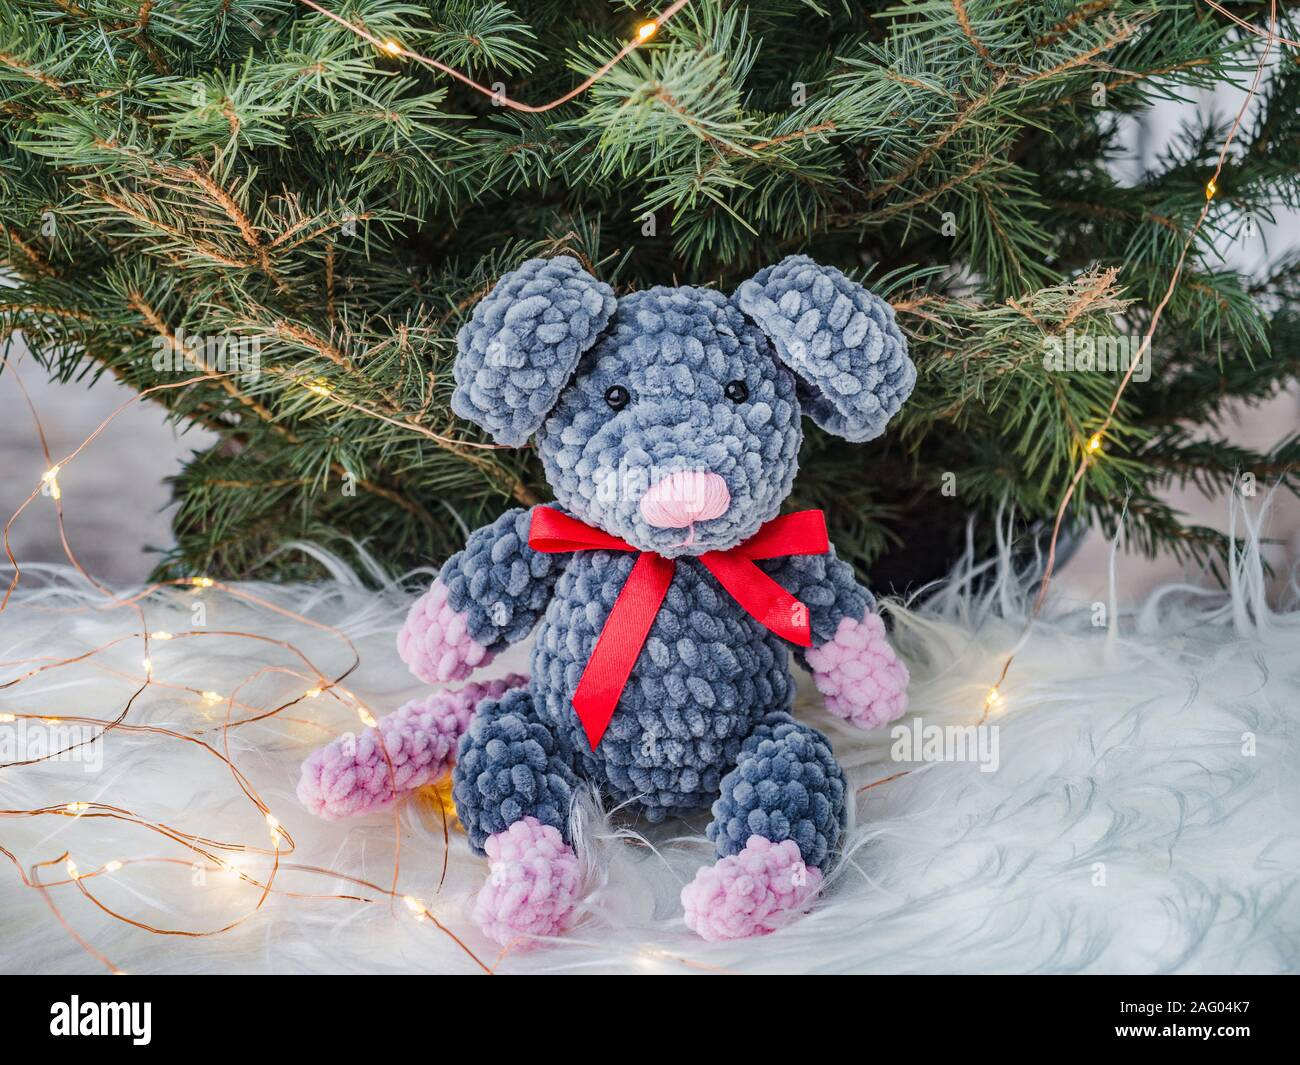 Plush toy, Christmas tree and Christmas decorations Stock Photo